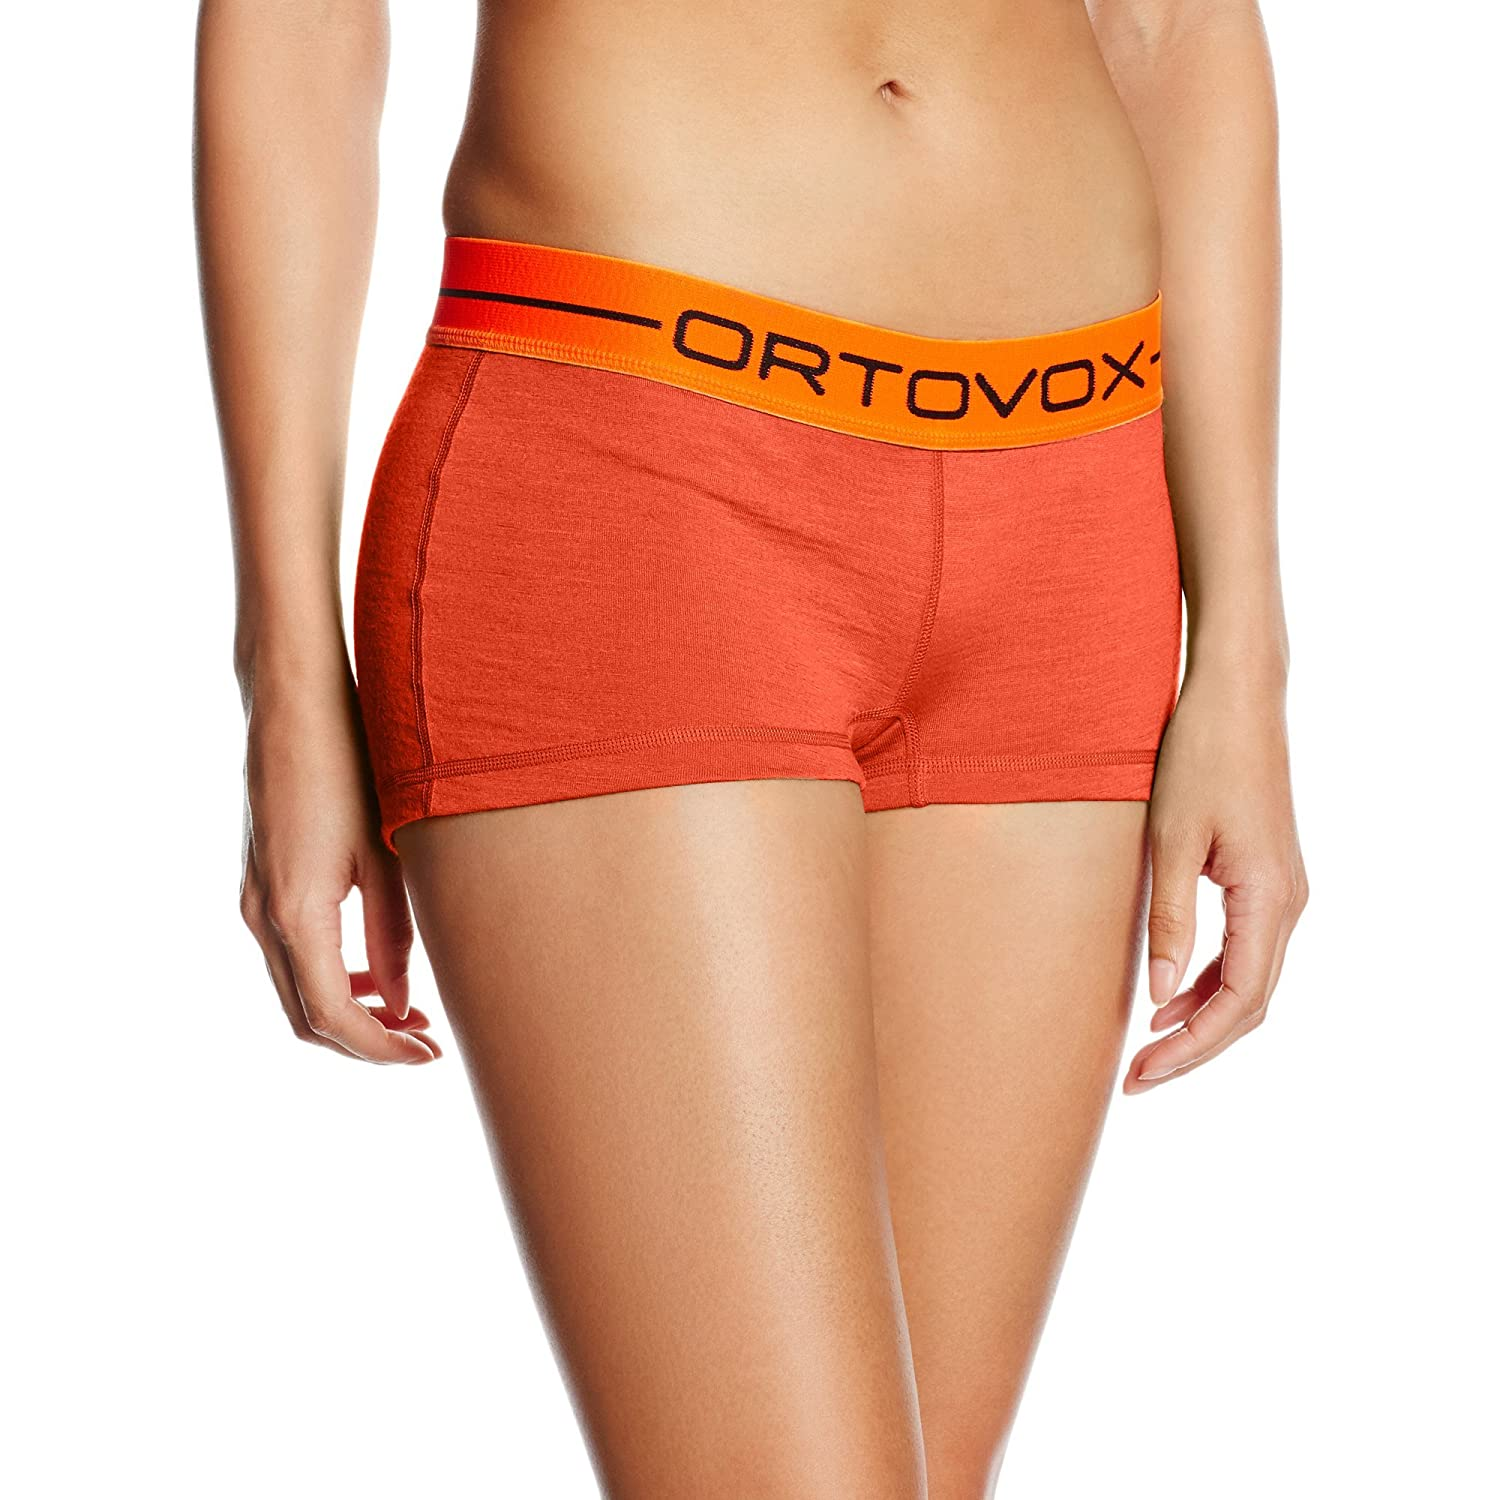 Ski Underwear Women Ortovox Merino R'NW Hot 185 Tech Pants